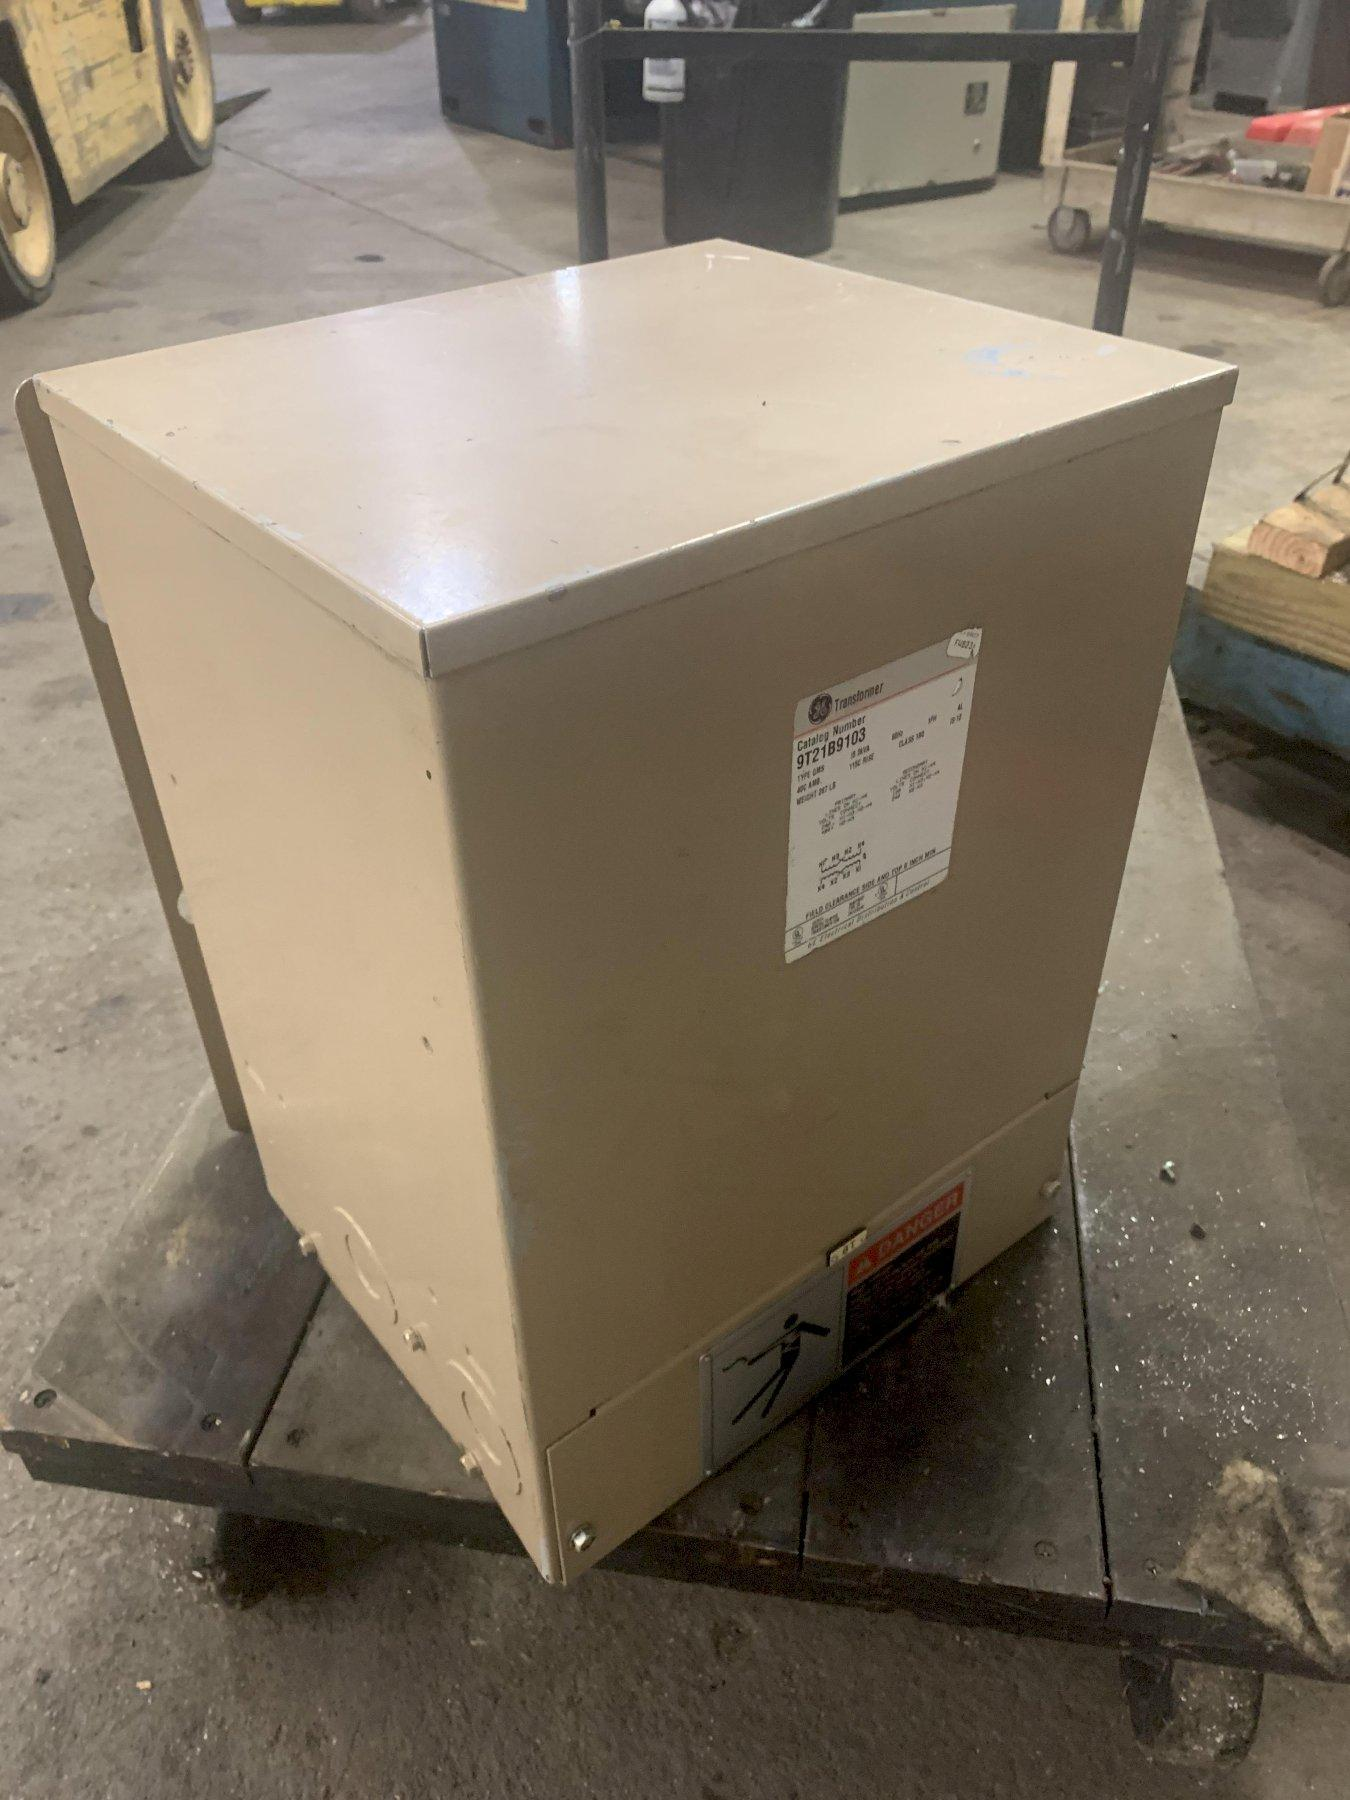 15 KVA GE 480 TO 240 VOLT SINGLE PHASE ELECTRICAL TRANSFORMER: STOCK 13740